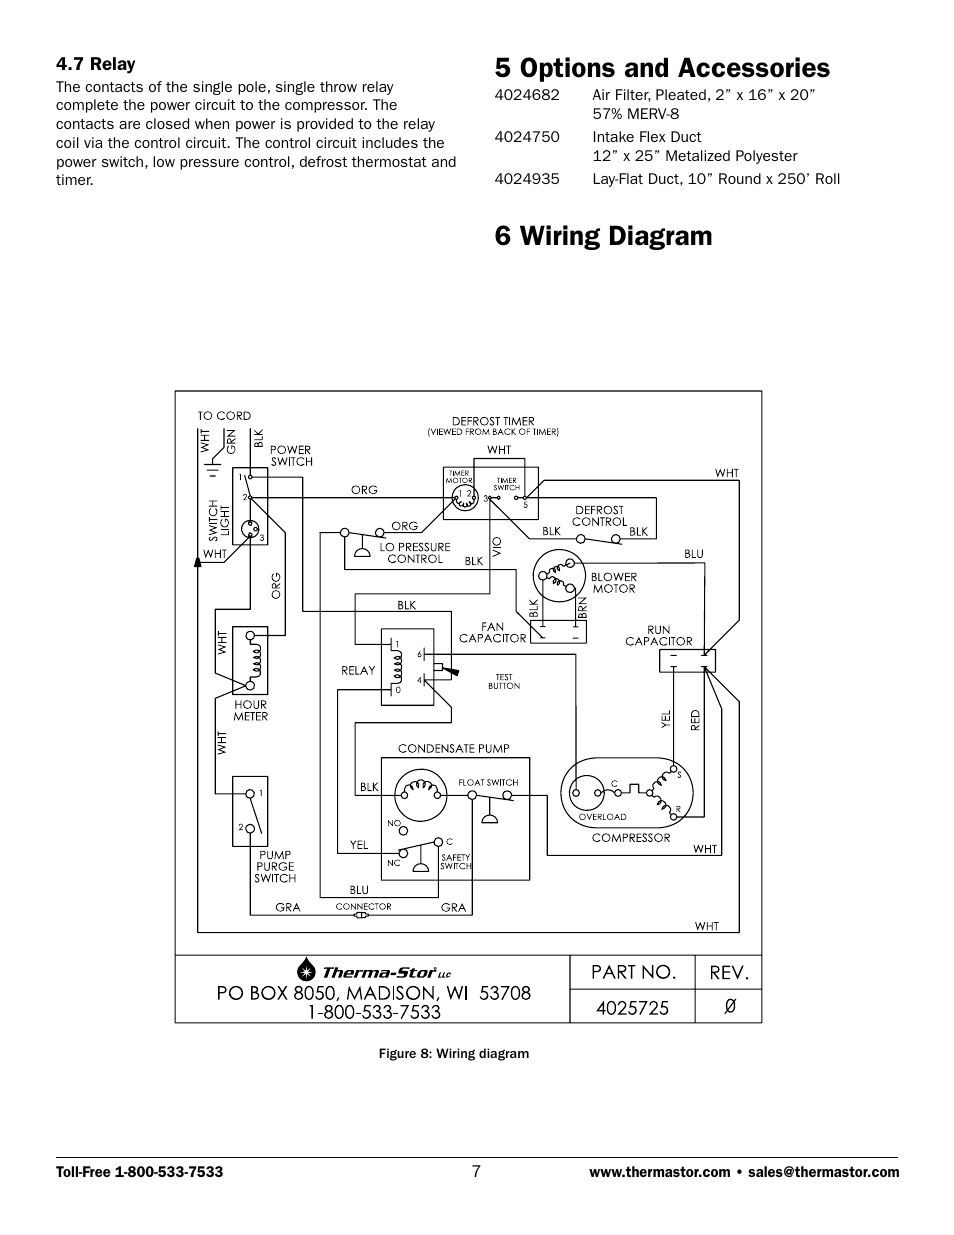 medium resolution of 5 options and accessories 6 wiring diagram therma stor products5 options and accessories 6